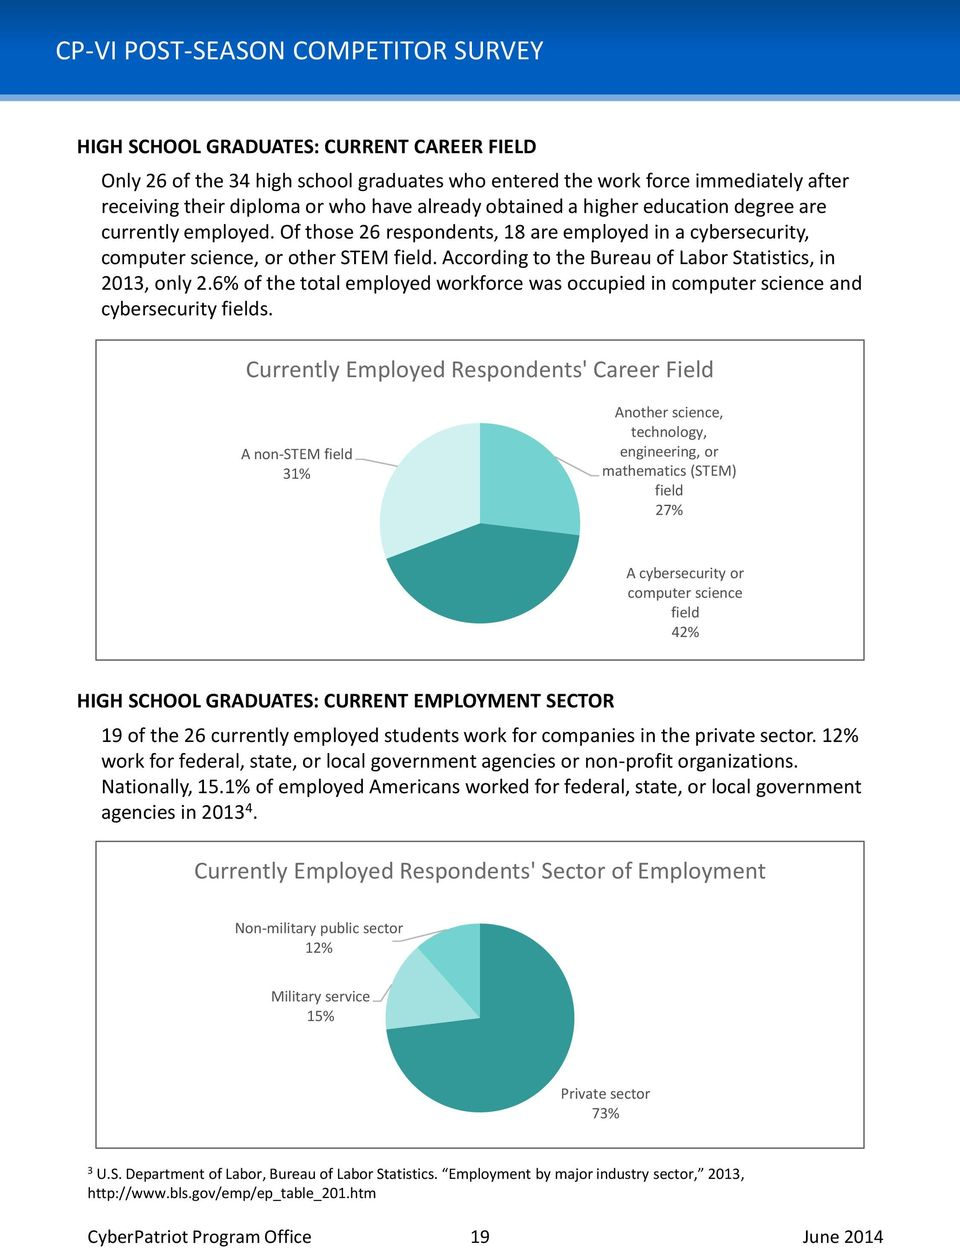 According to the Bureau of Labor Statistics, in 2013, only 2.6% of the total employed workforce was occupied in computer science and cybersecurity fields.